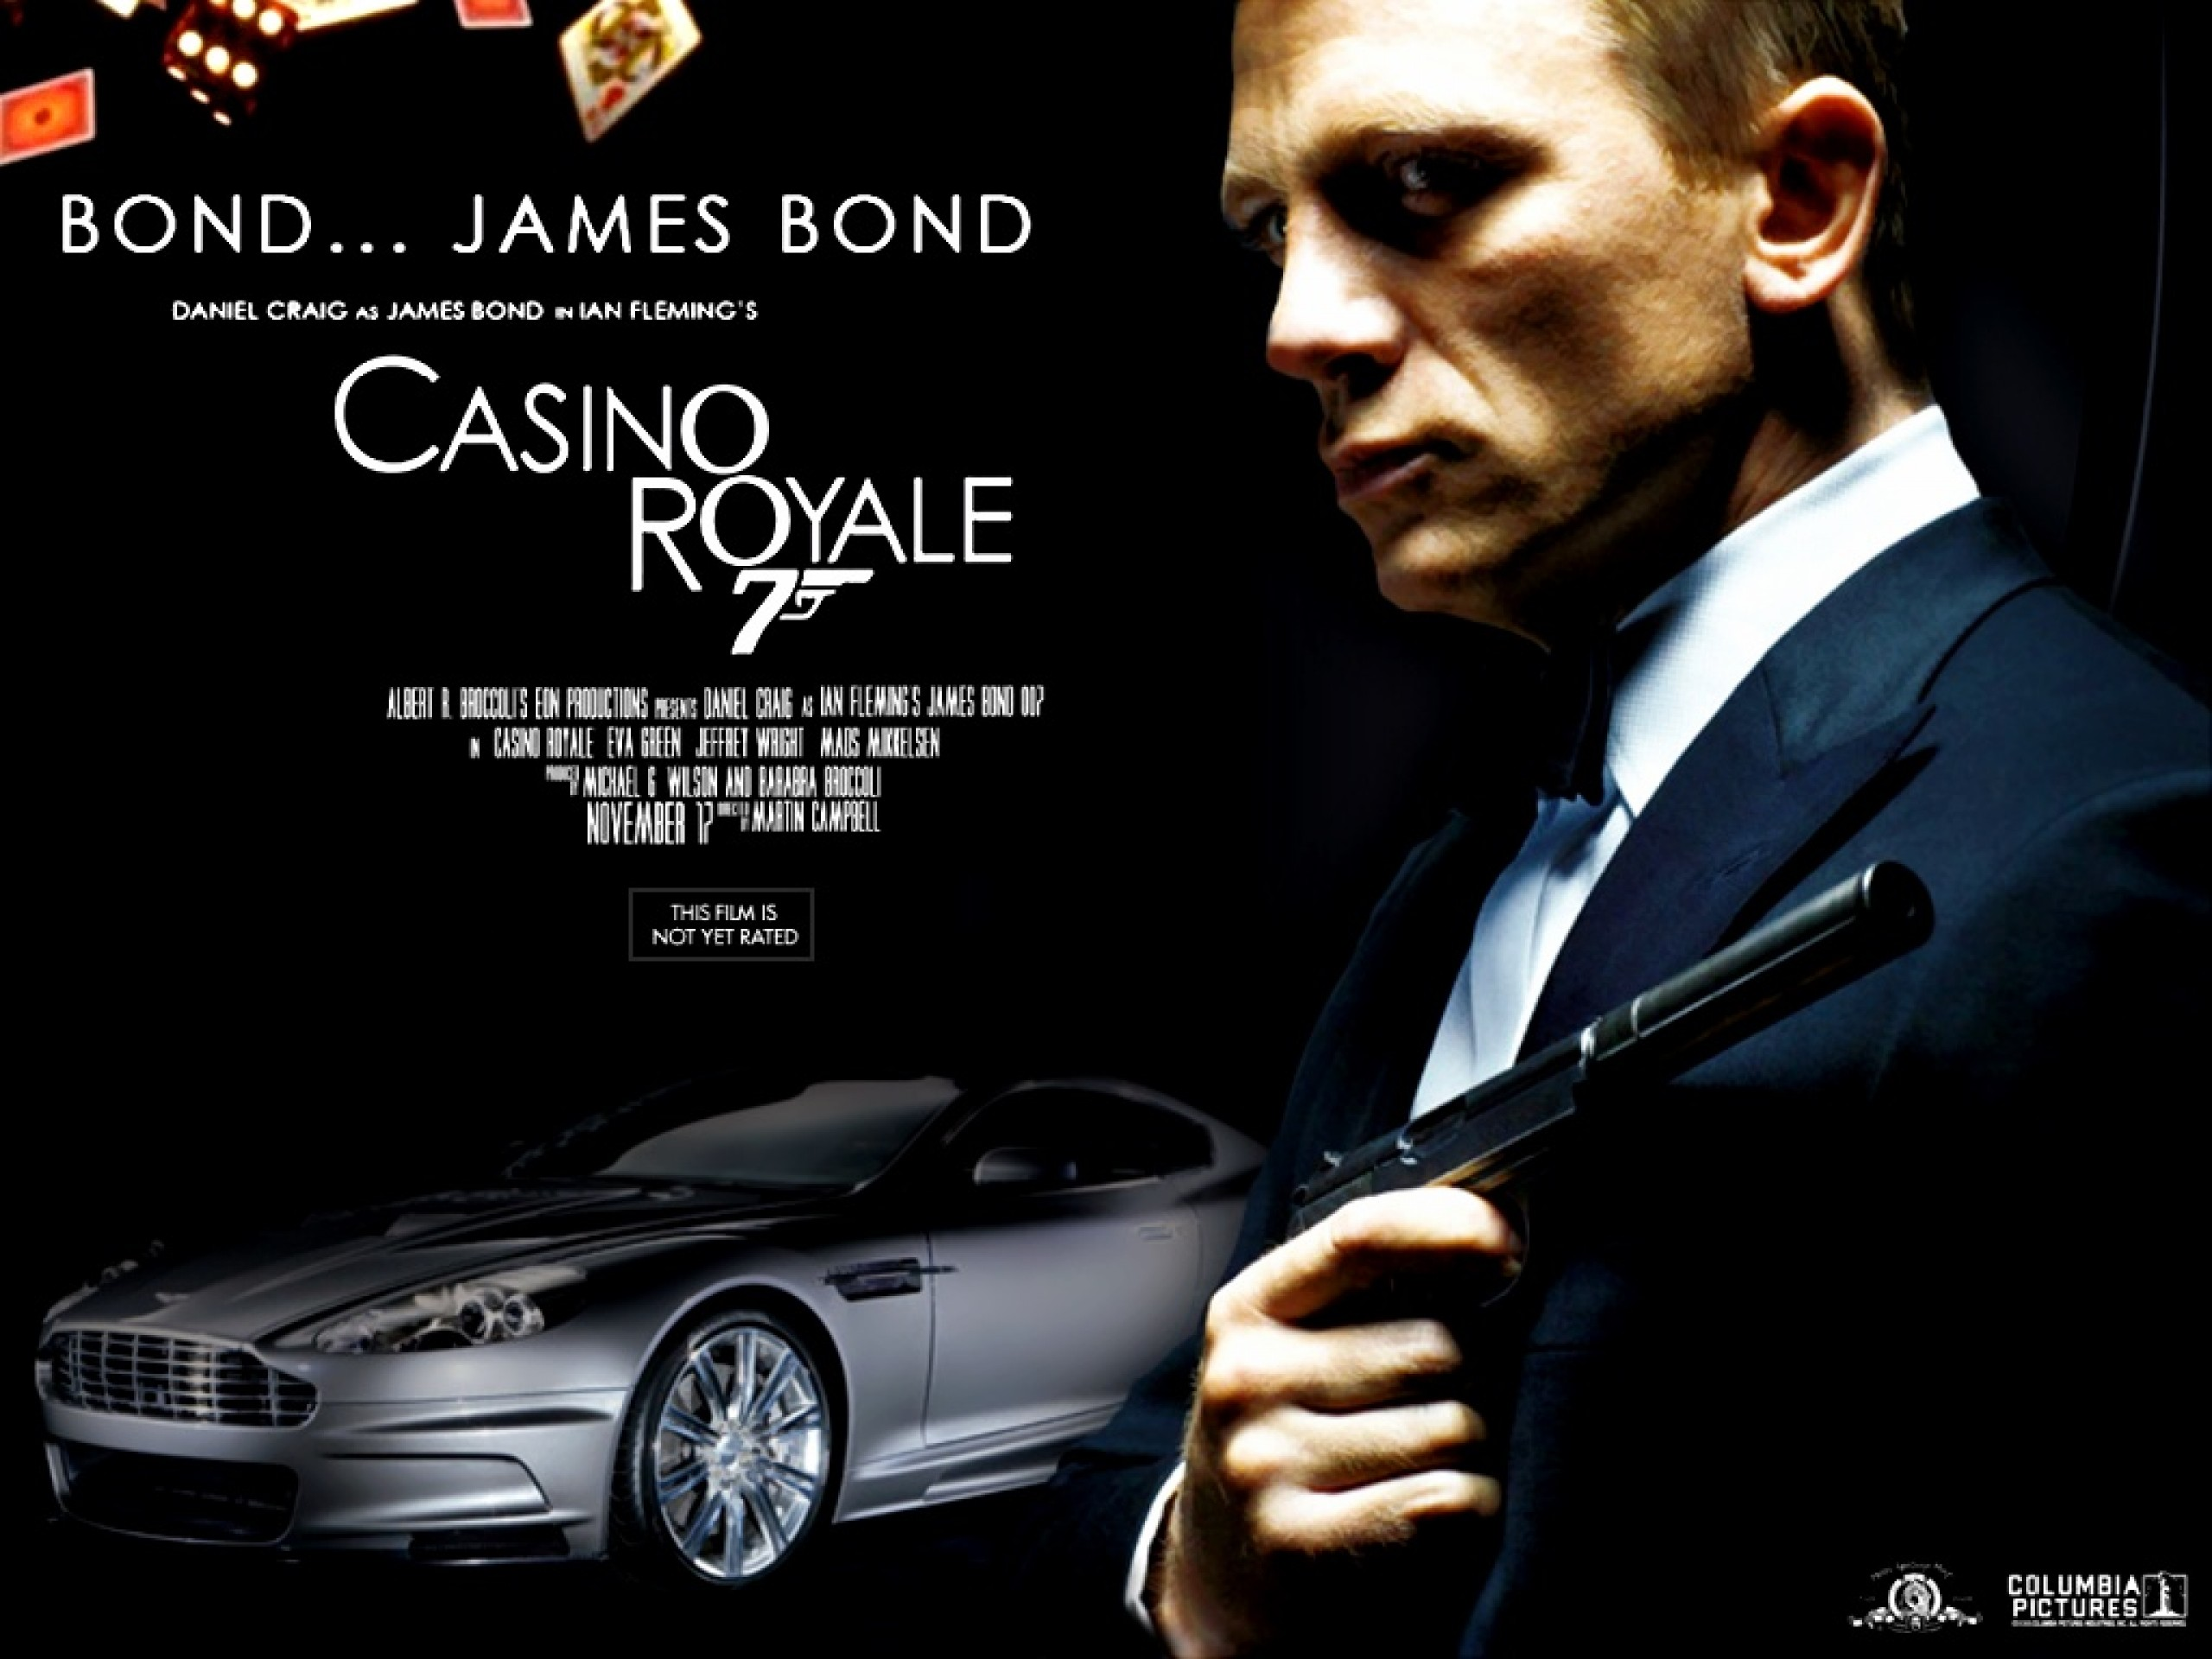 james bond casino royale full movie online online casion